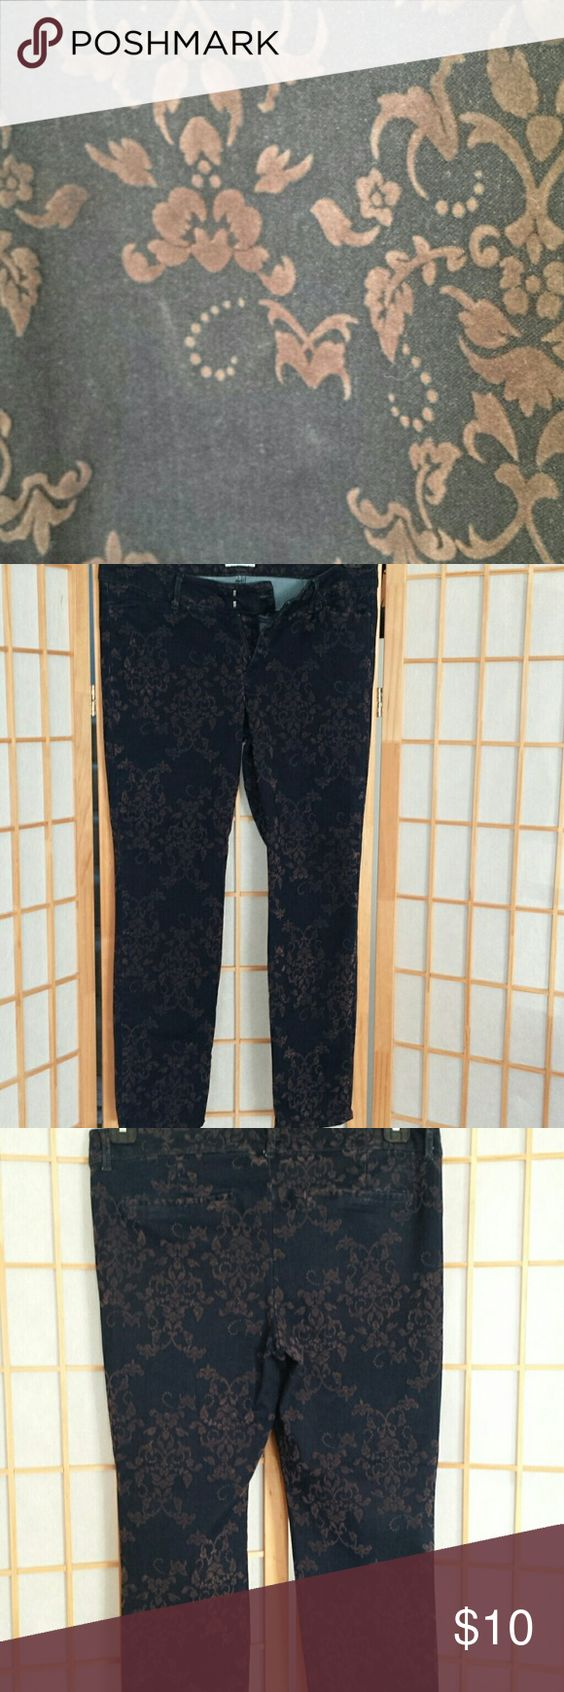 Old Navy  Diva jeans sz 10 Body 71 cotton 27 poloyster 2 spandex  Flocking 100 rayon  Darlk navy blue with raised chocolate brown design  Inseam 26 inches  Pants or capris. ...depending on your height  Great condition. ...no fading Old Navy Jeans Straight Leg